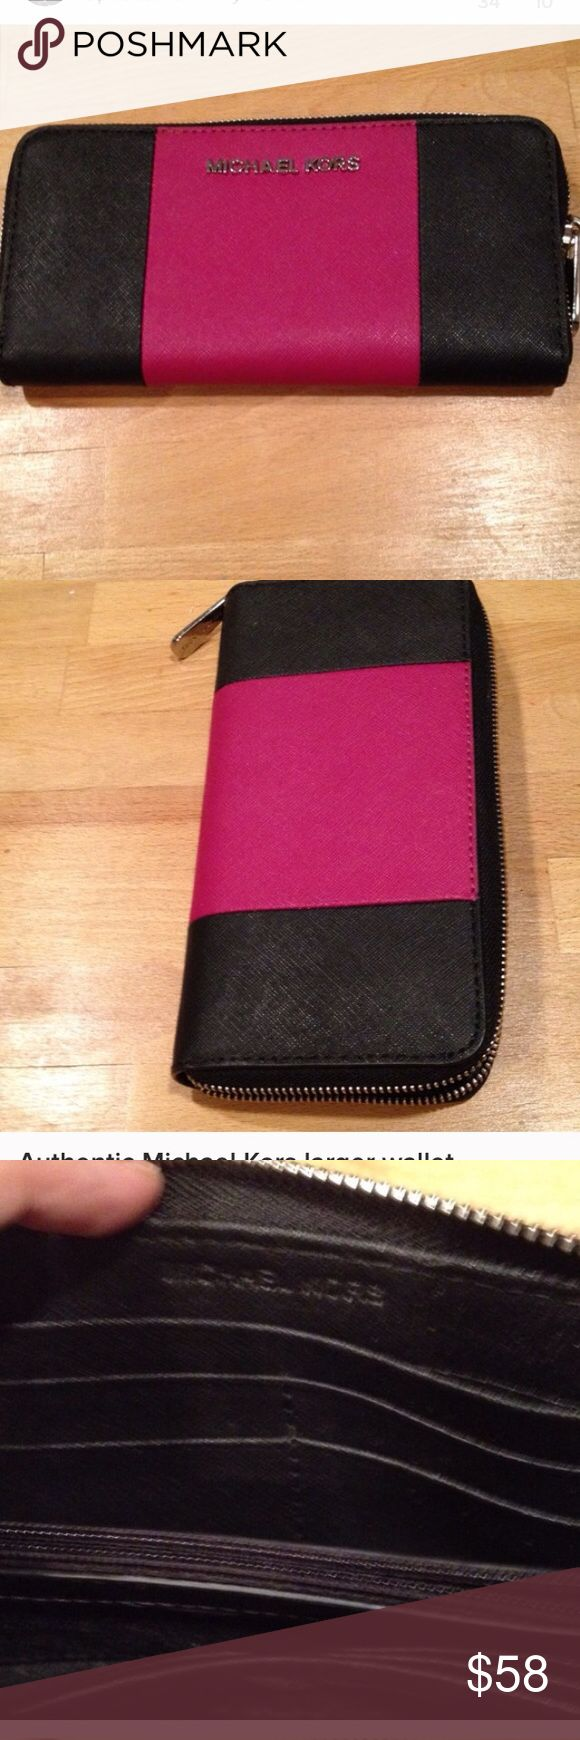 Atlantic Michael Kross new wallet Lots pocket , zipper coin . New 8 plus more slots , 2 spots to hold cash Michael Kors Accessories